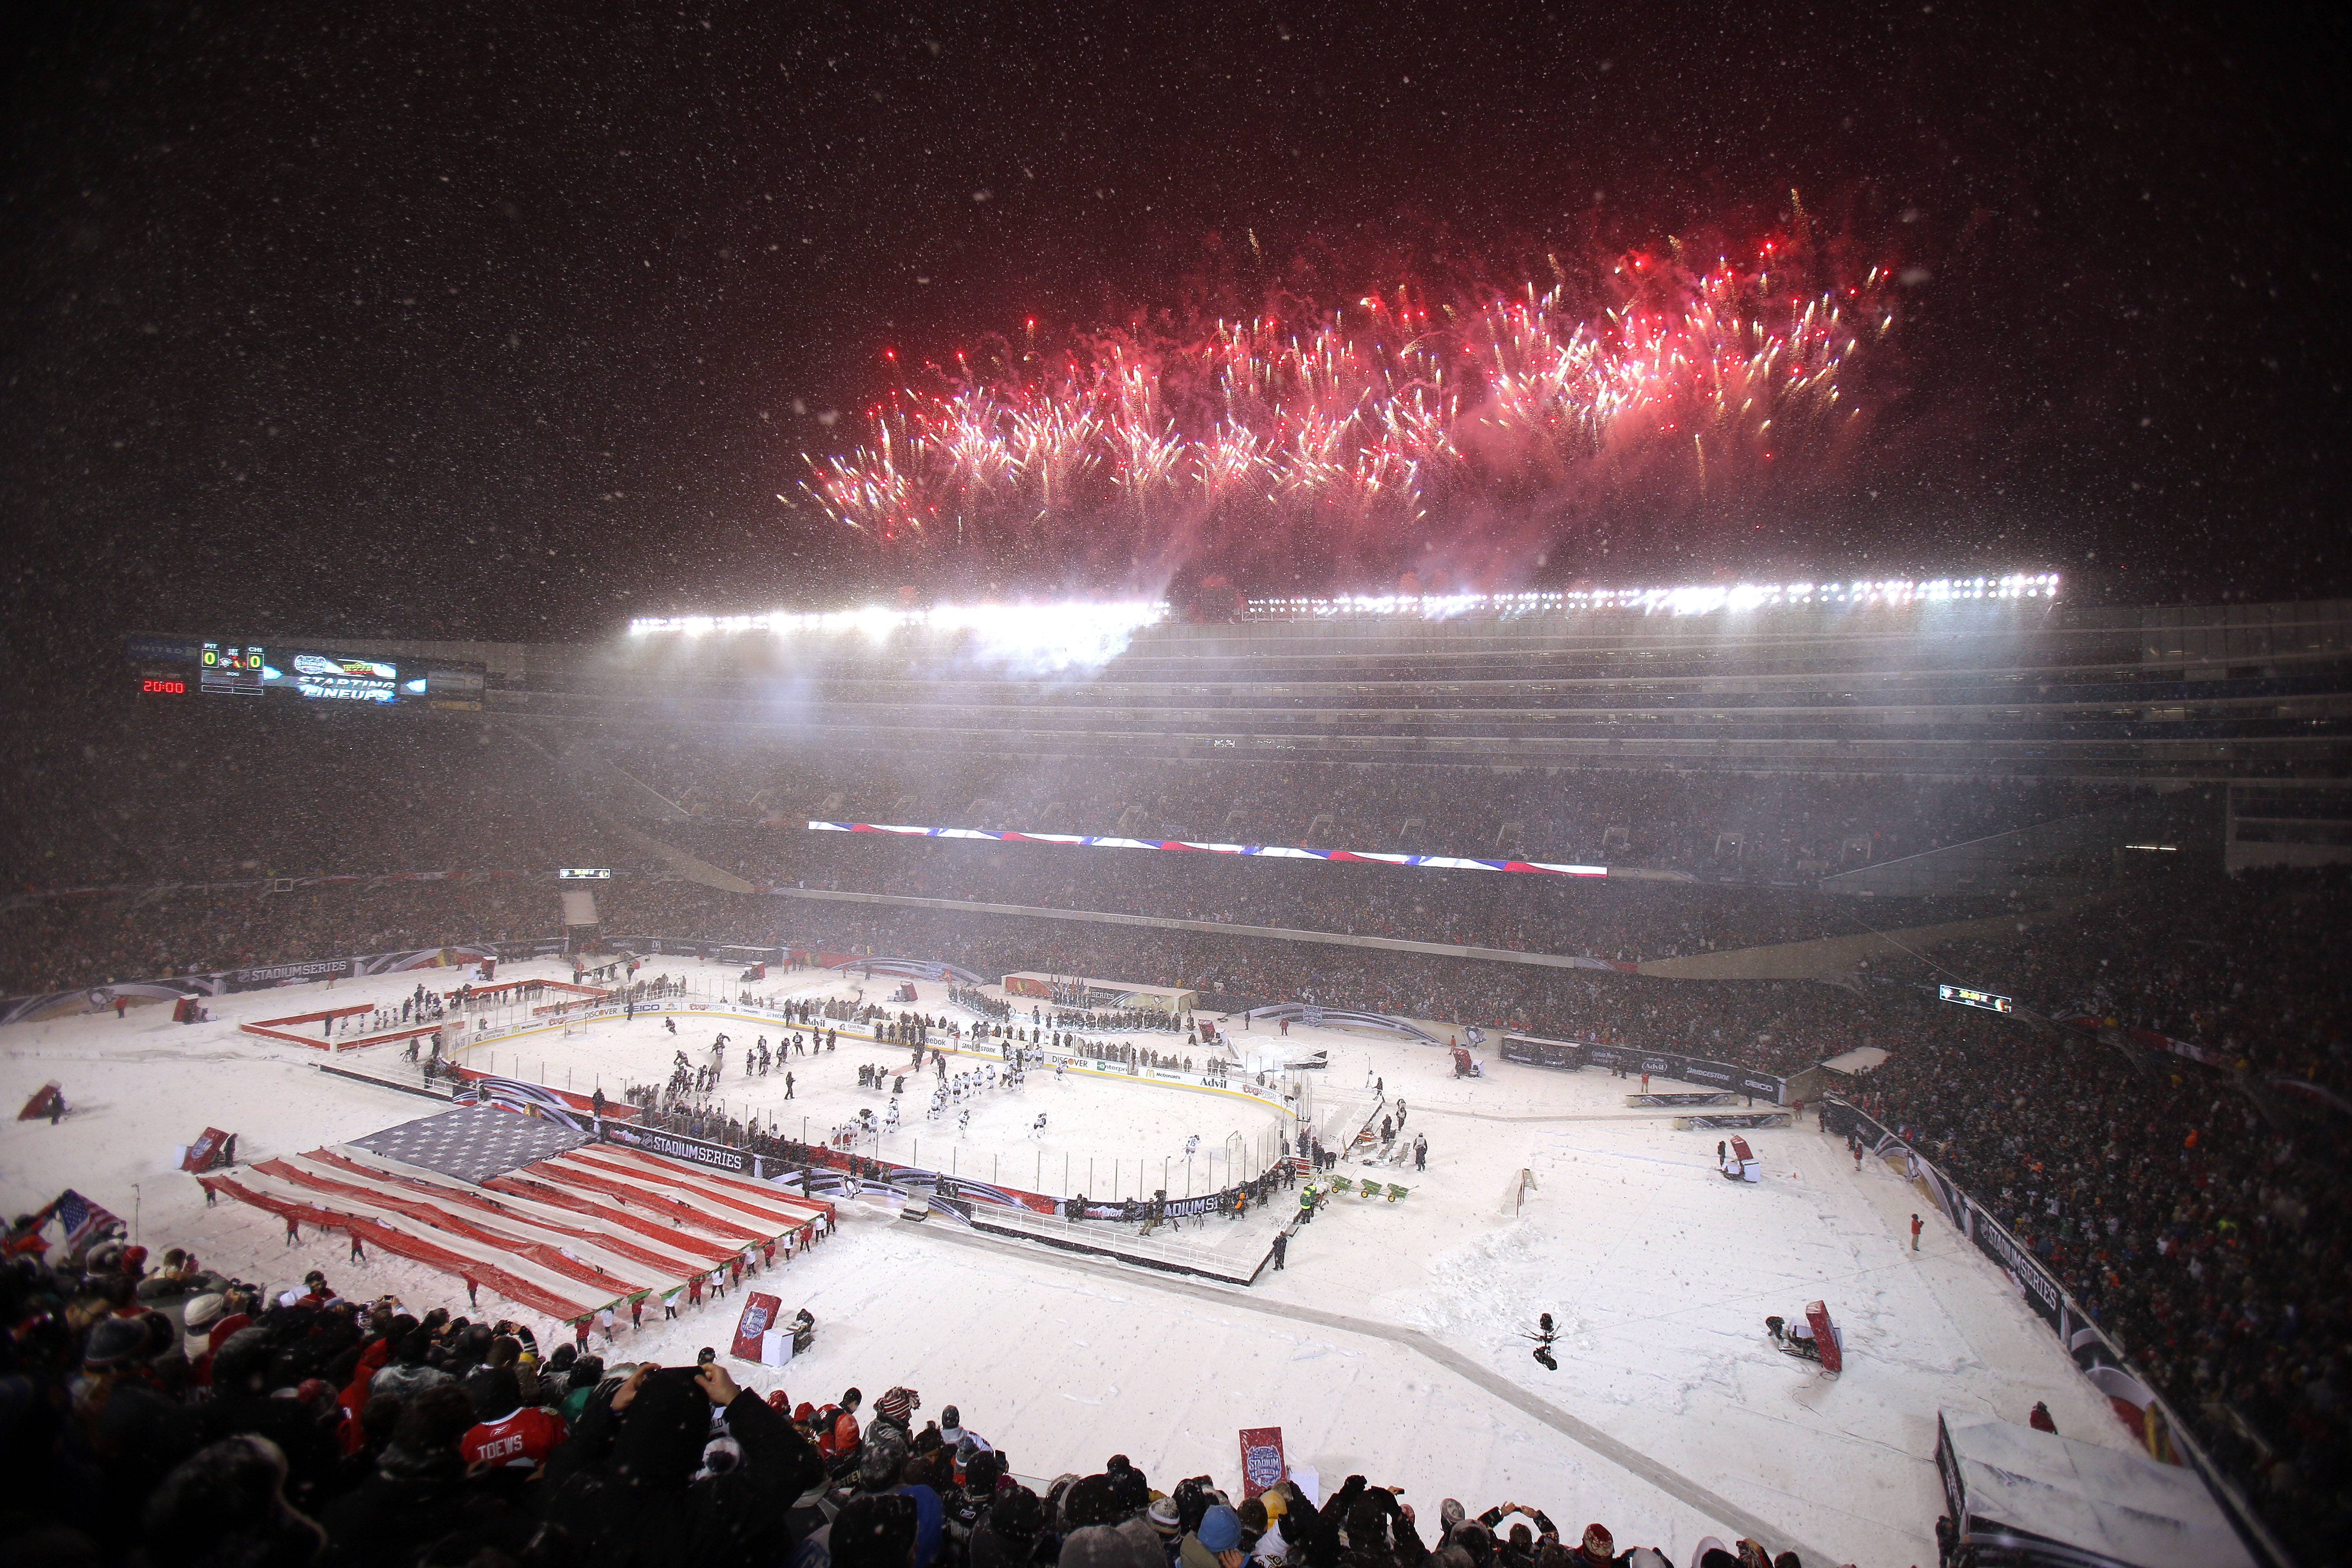 Fireworks go off after the national anthem during the NHL Stadium Series between the Blackhawks and the Penguins Saturday at Soldier Field.